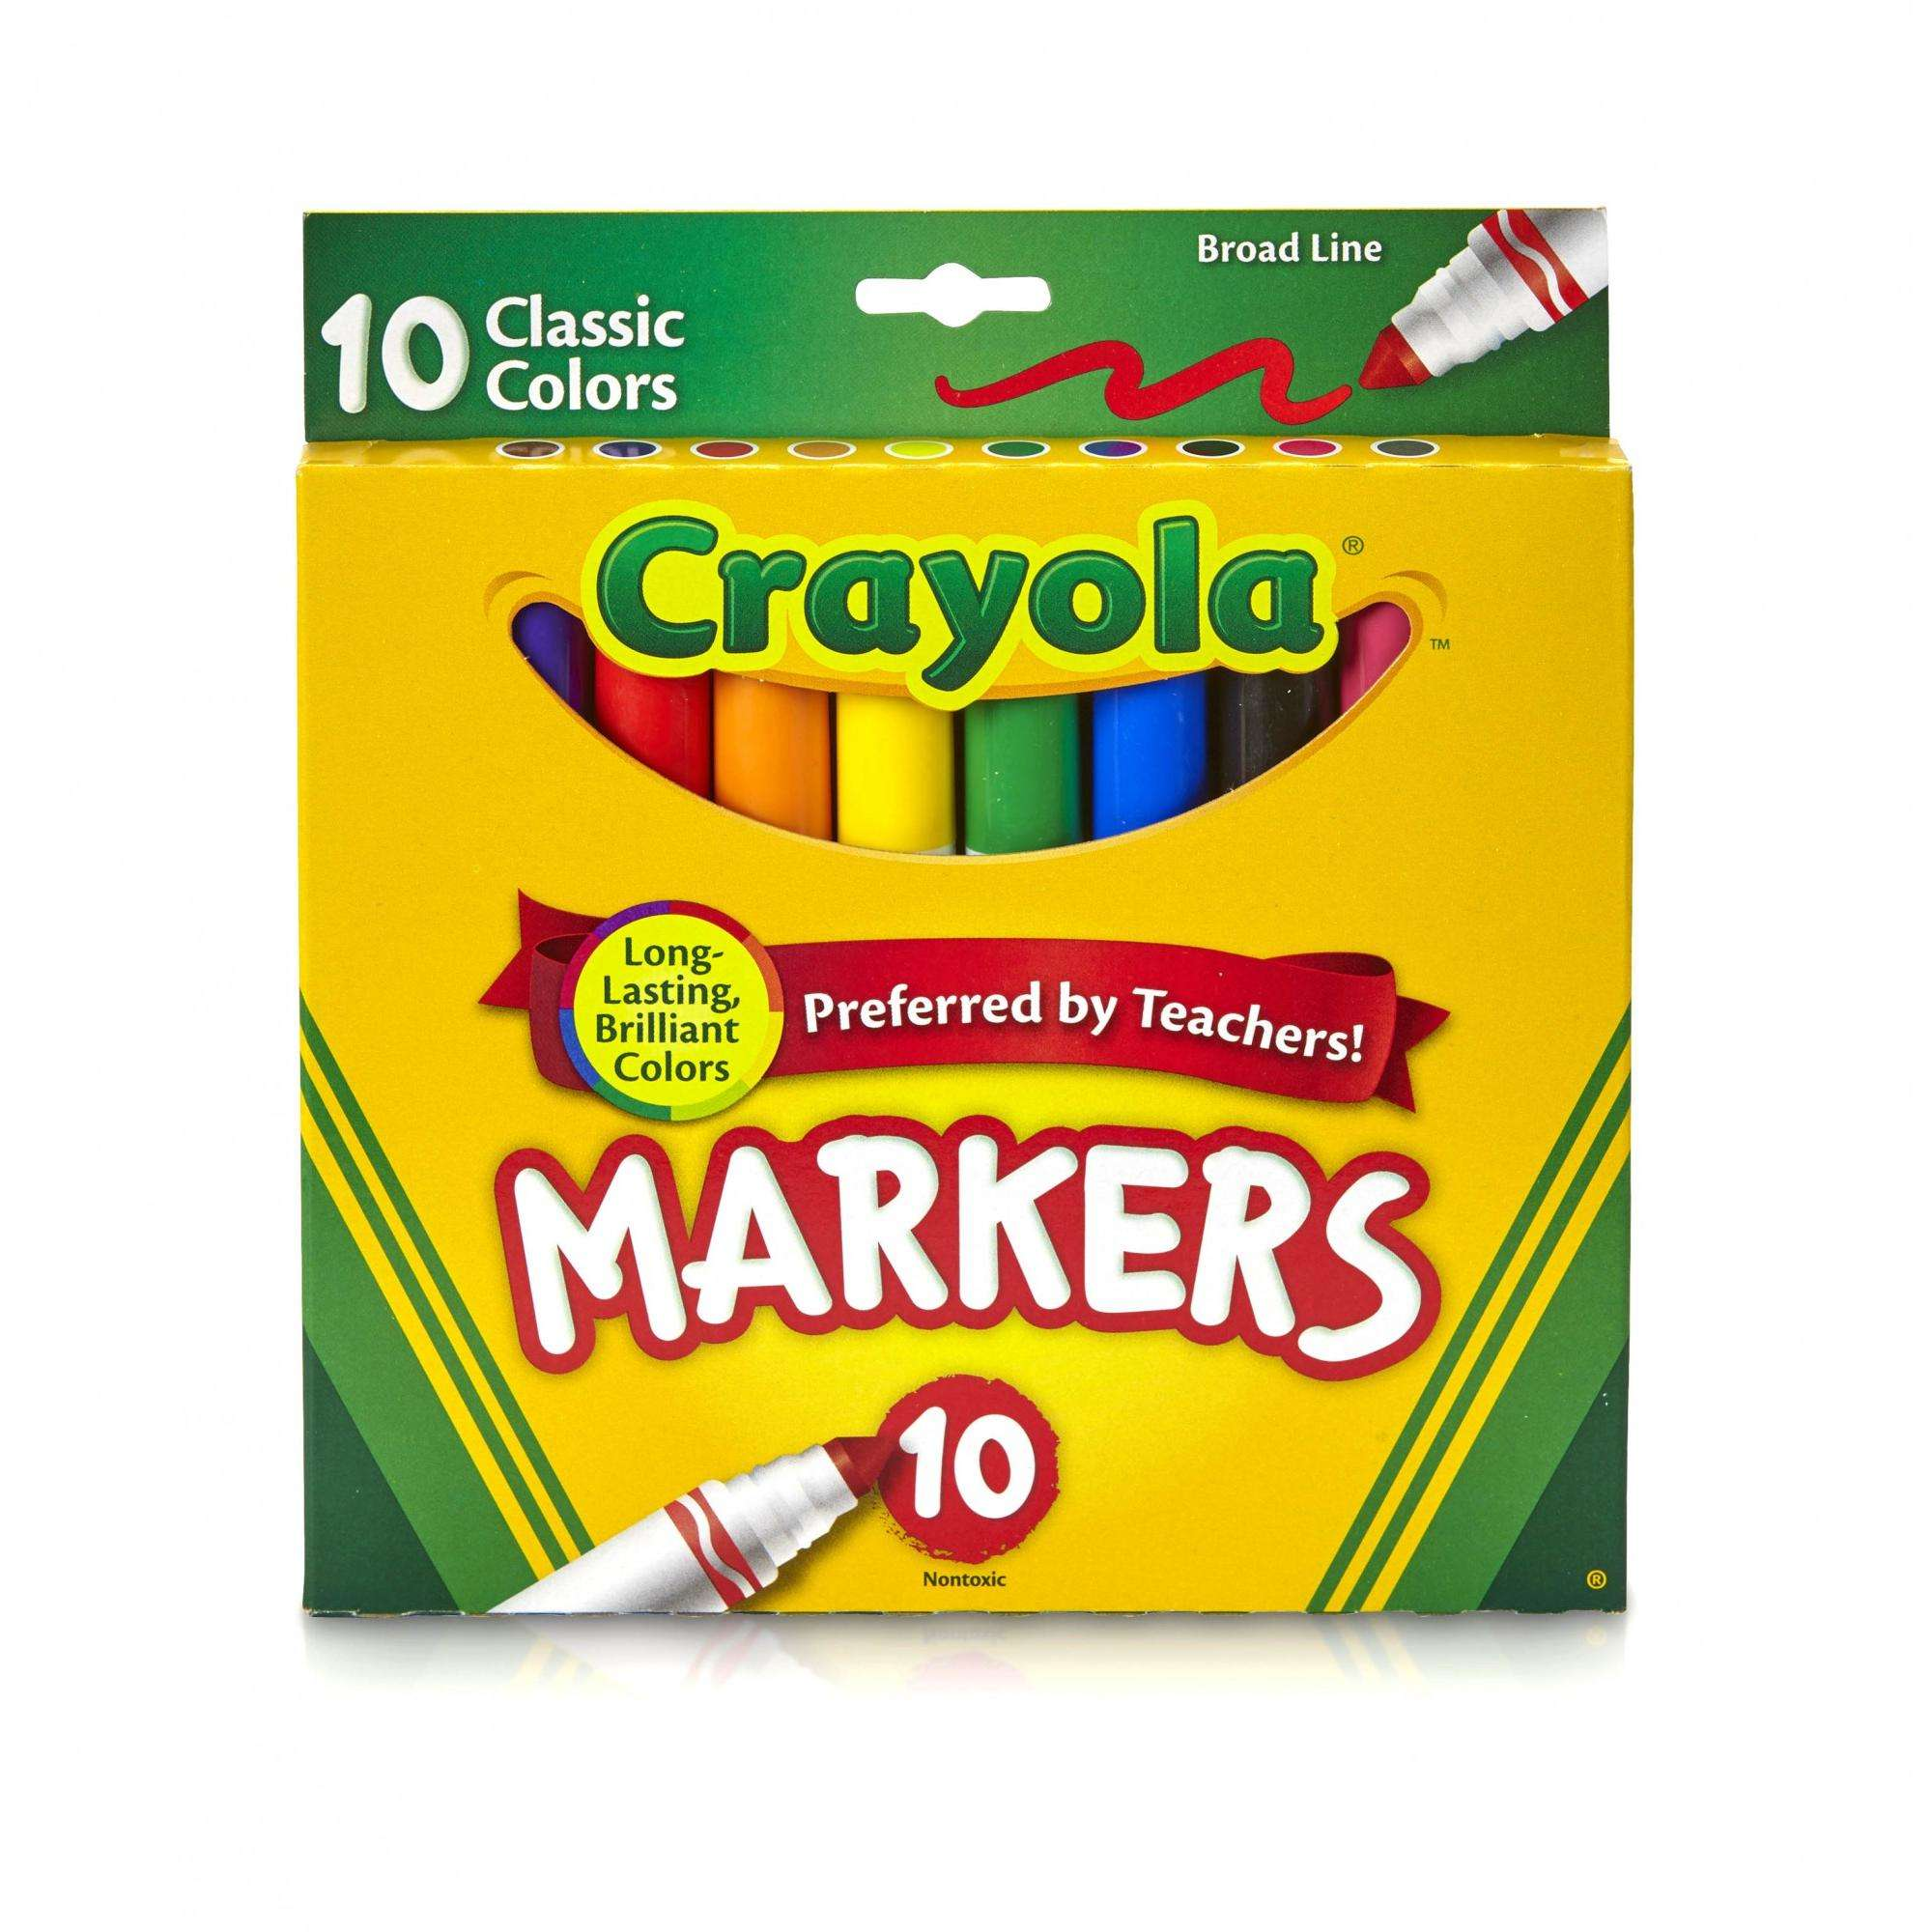 Crayola Classic Broad Line Markers, Classic Colors, 10-Count